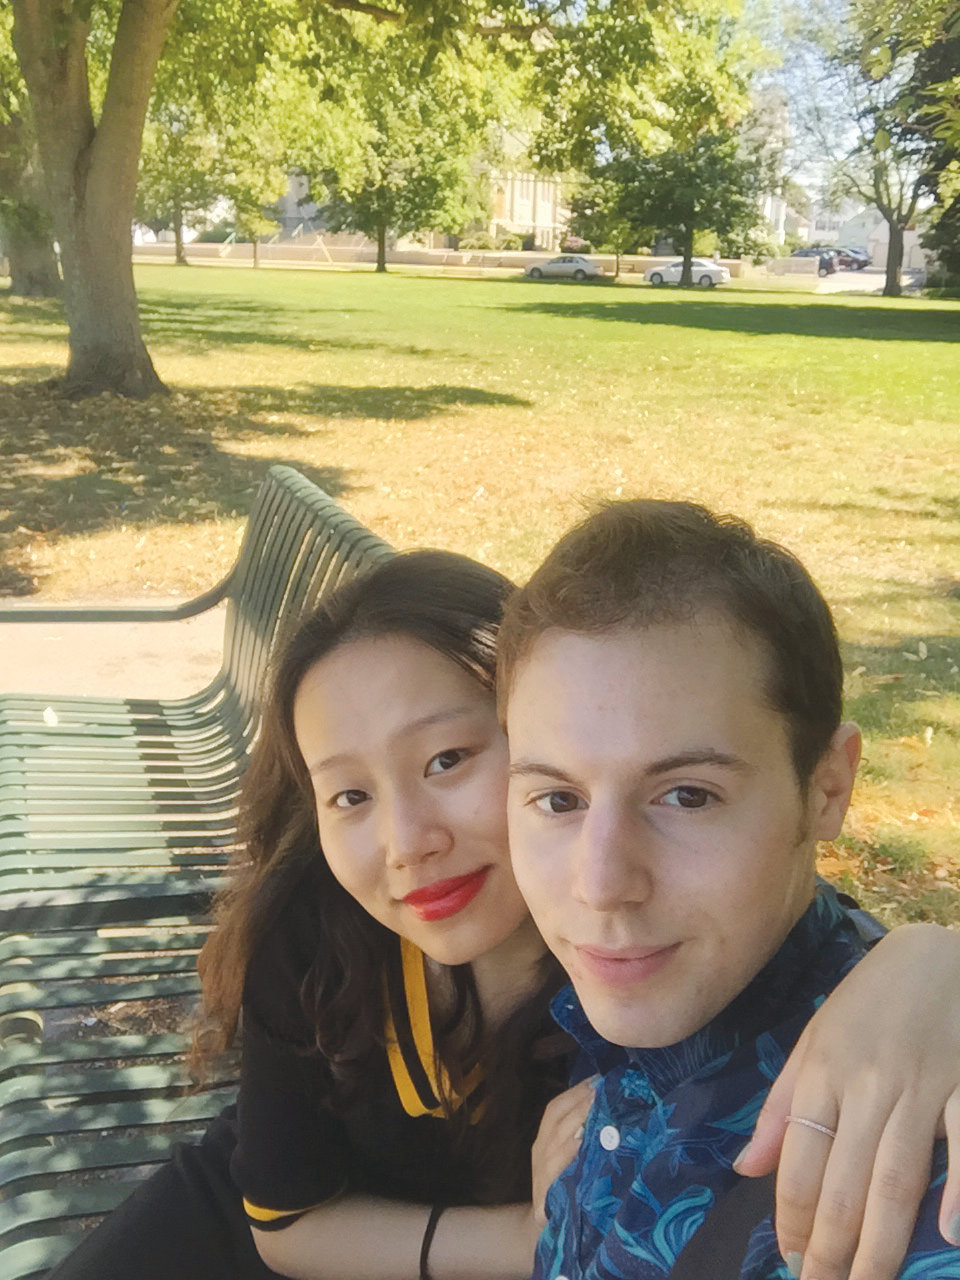 Kevin Spencer with his wife, Tian. He is finishing his master's degree in China, while she is studying in the UK. The couple will return to the United States this fall.